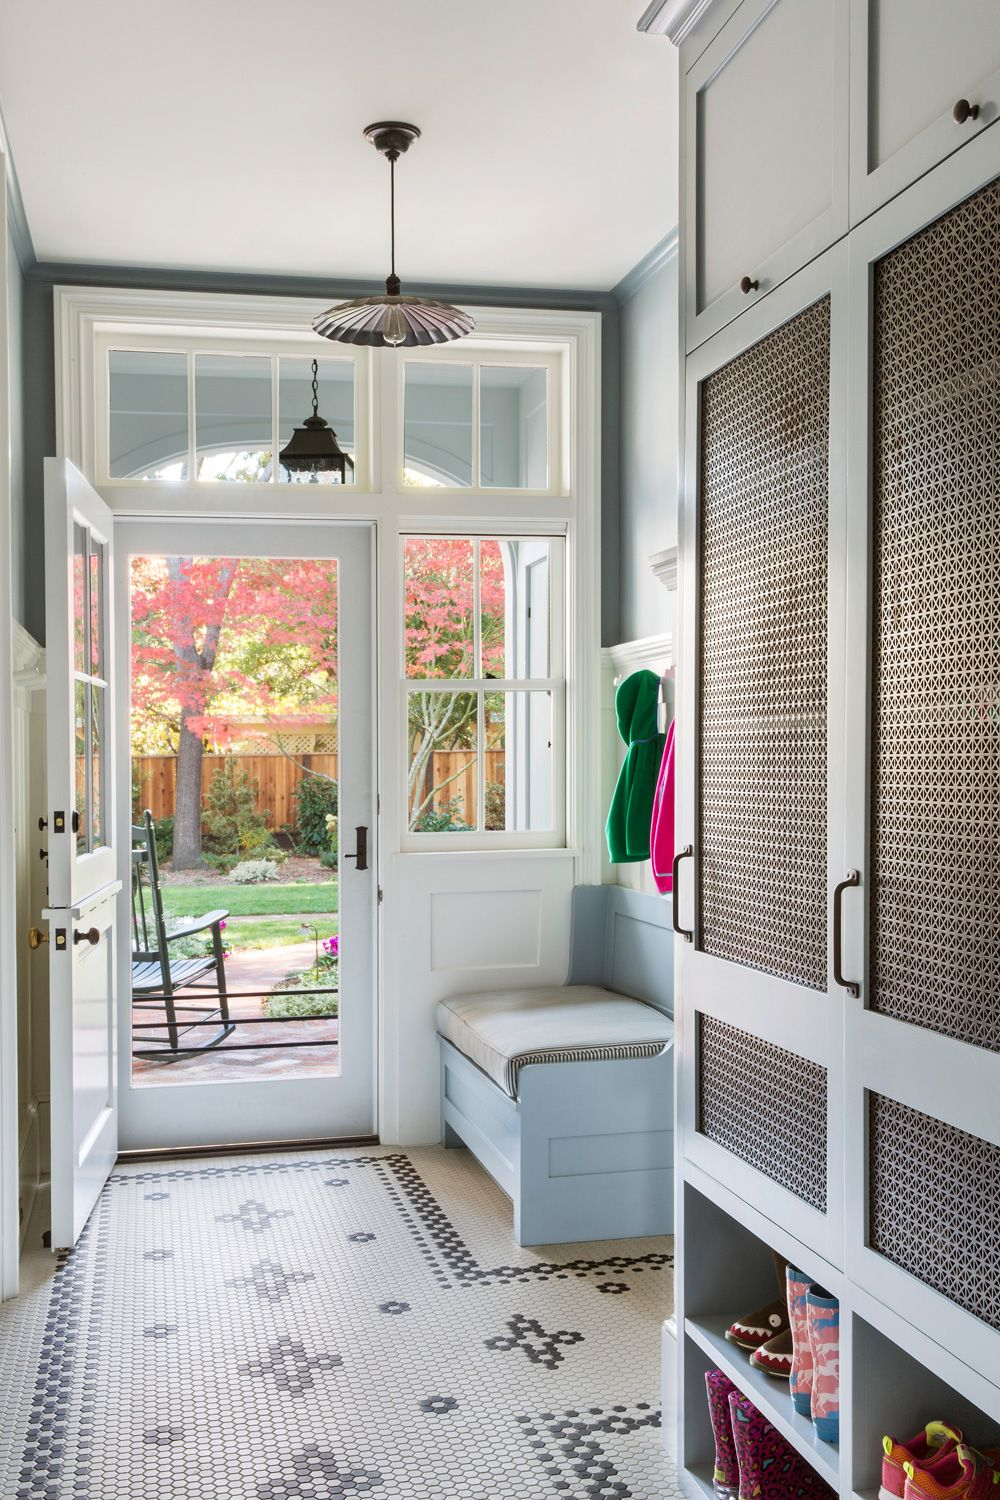 entryway, tiny hexagonal floor tiles, white wall, light blue bench, white framed door and window, cabinet